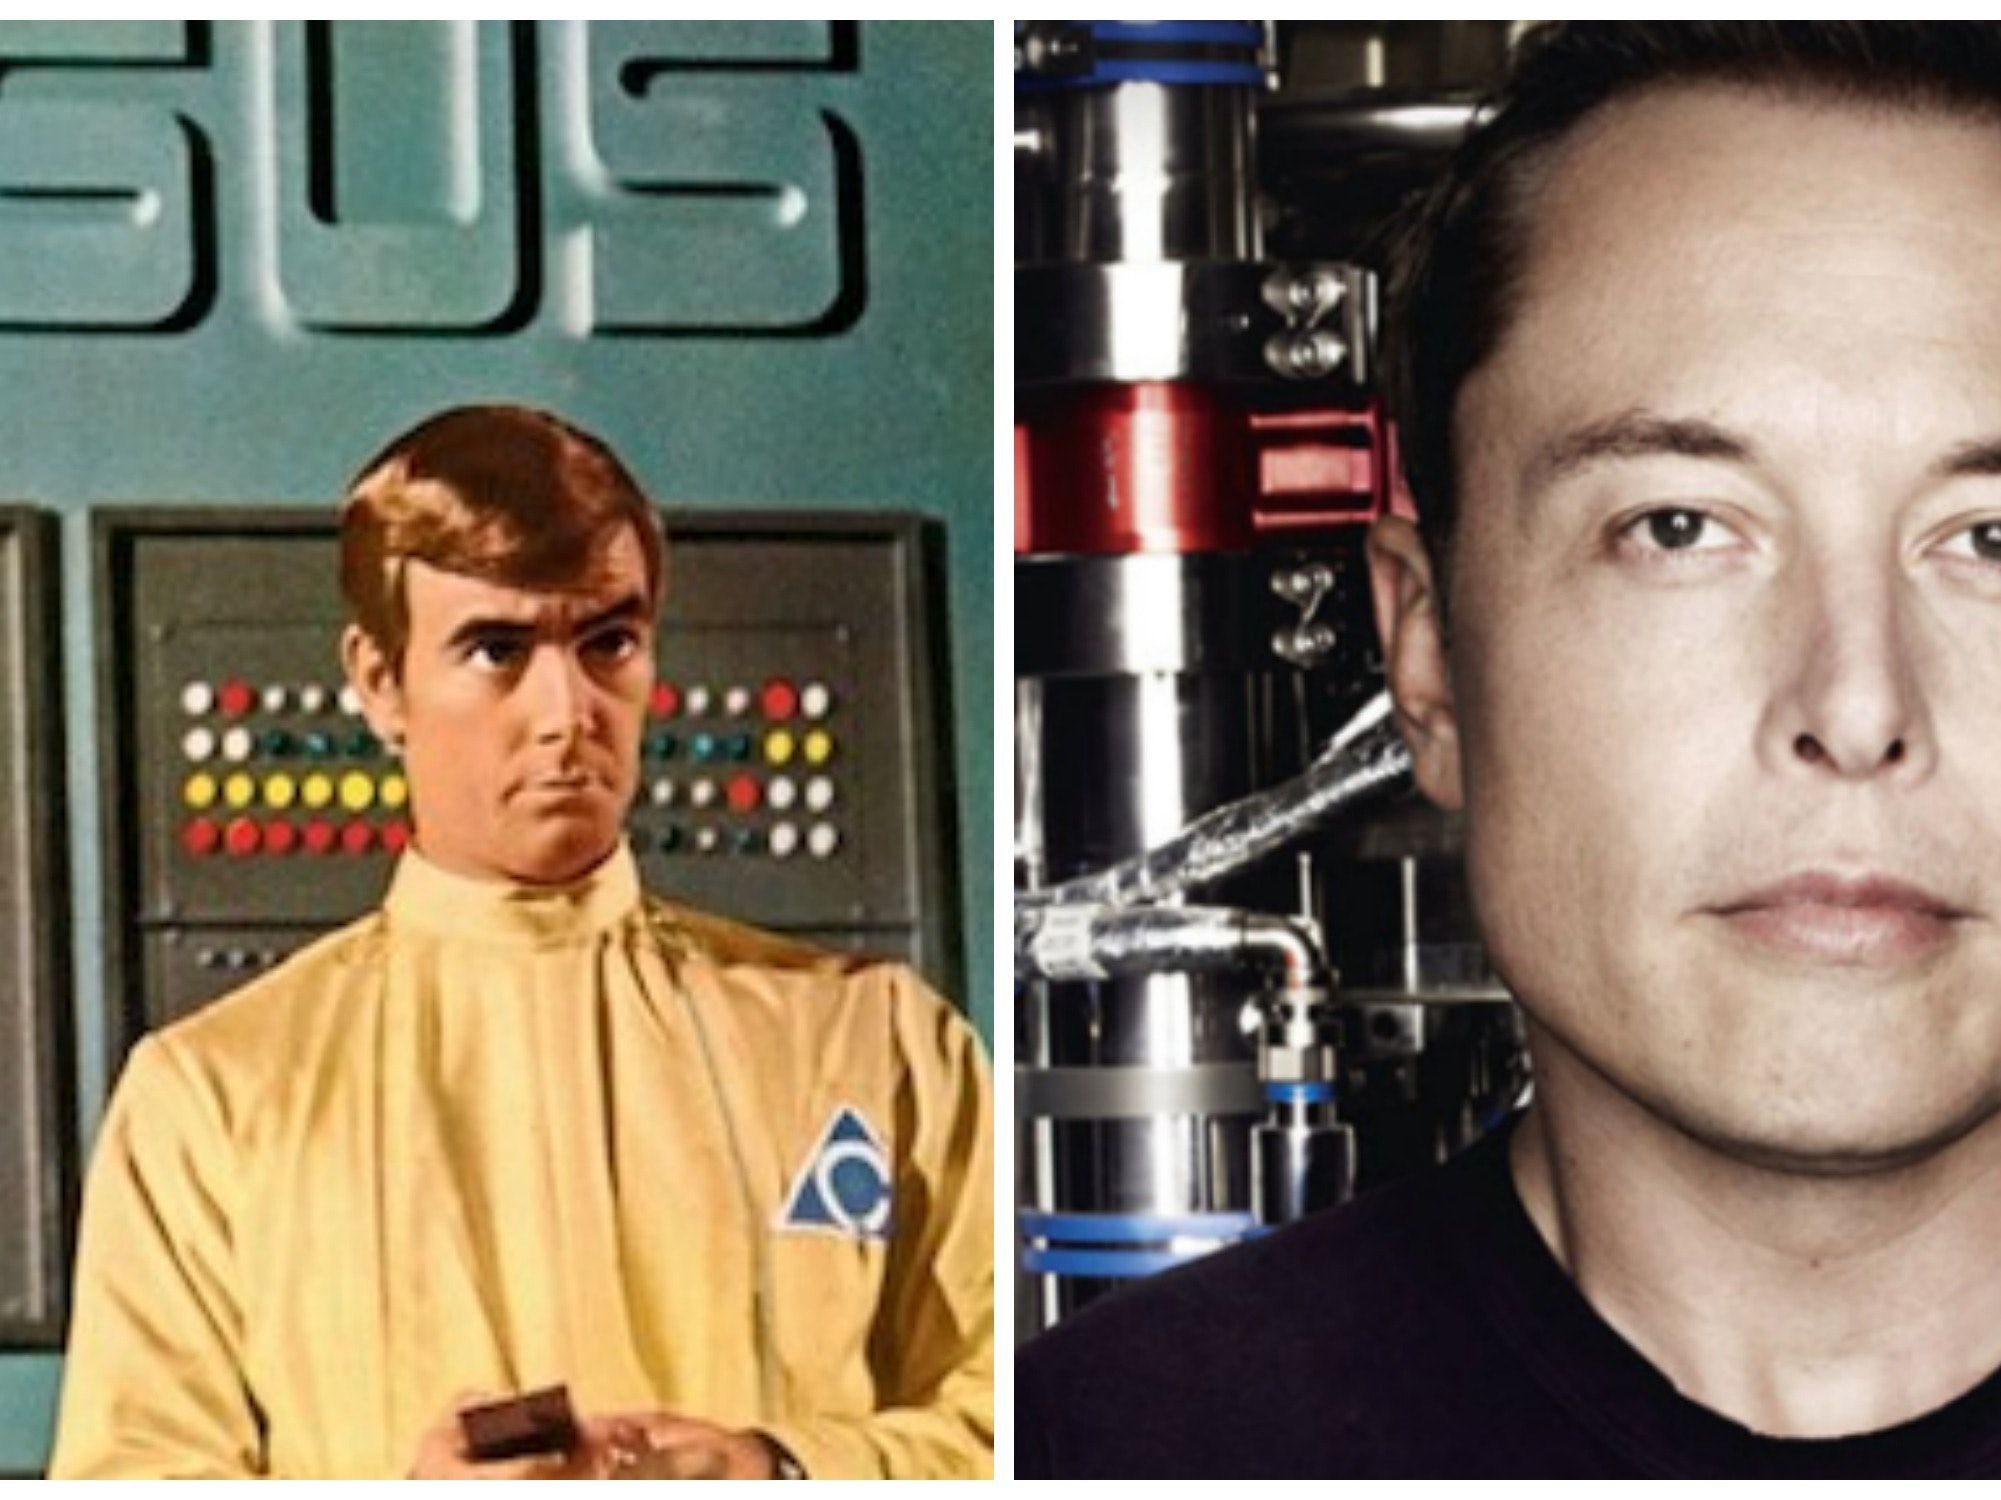 Is Elon Musk Researching A.I. by Watching Old Sci-Fi Movies?